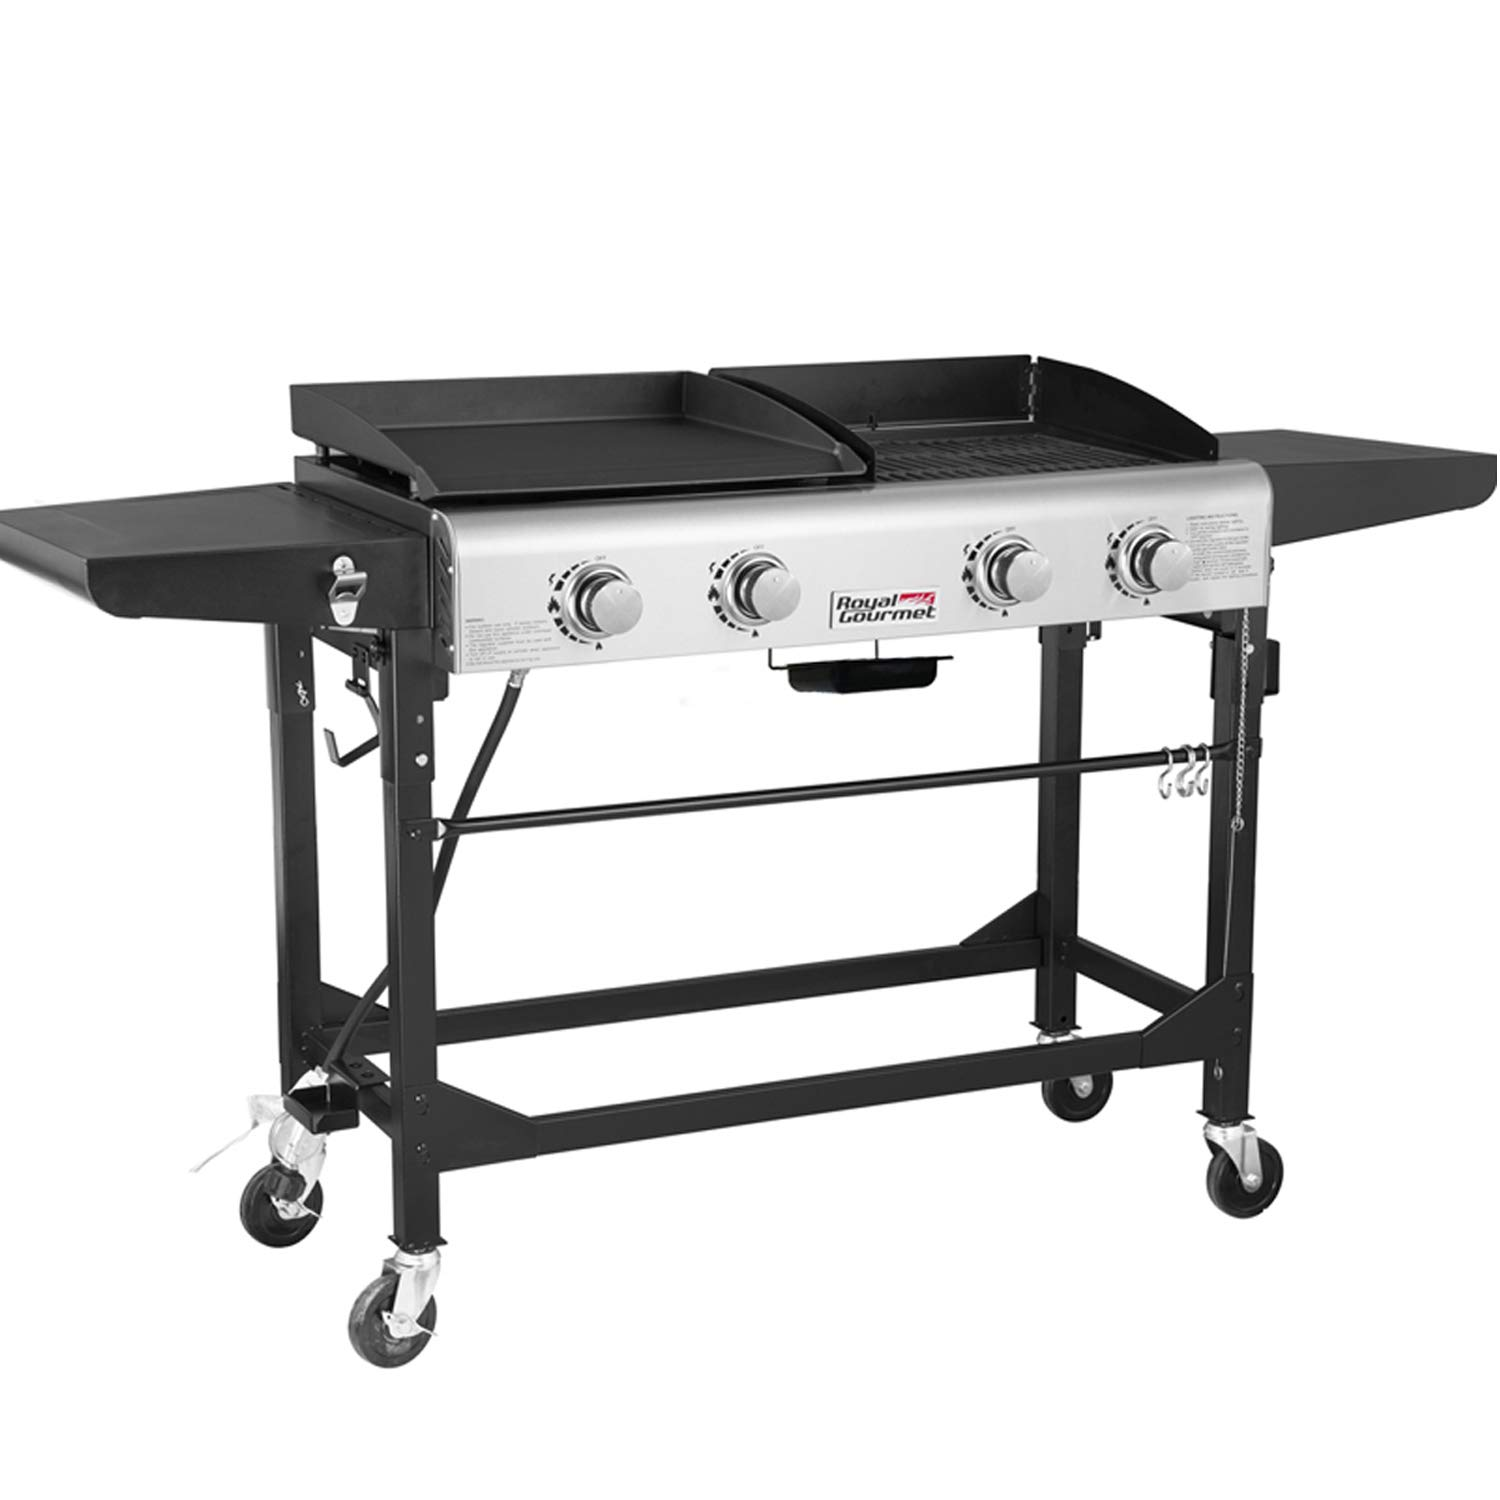 Top 9 Best Outdoor Gas Griddles For 2021 Buying Guide